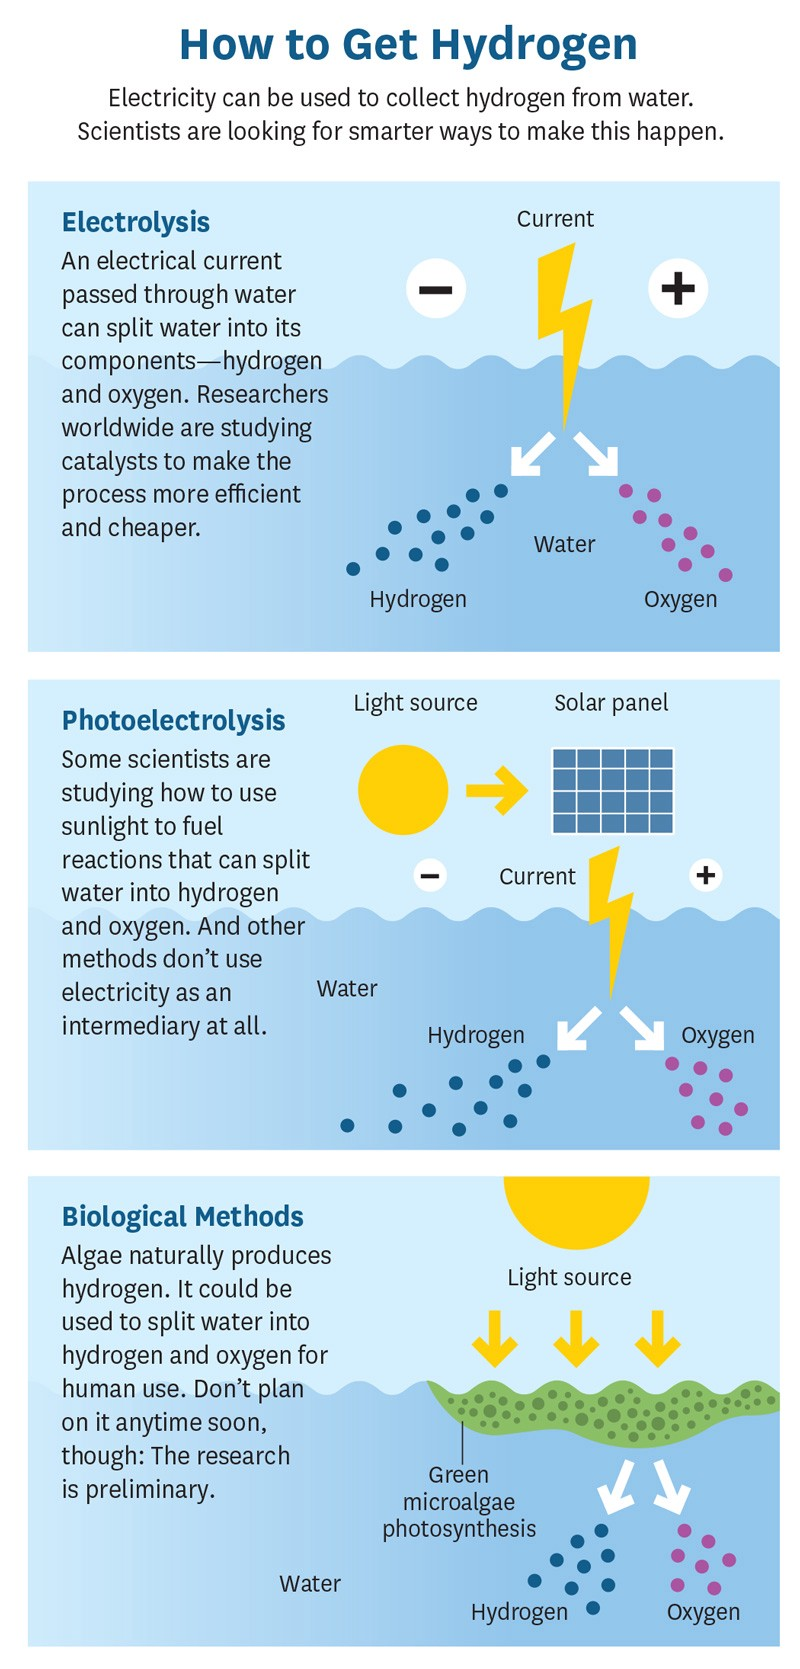 There are three main ways to produce hydrogen: electrolysis, photoelectrolysis, and biological methods.